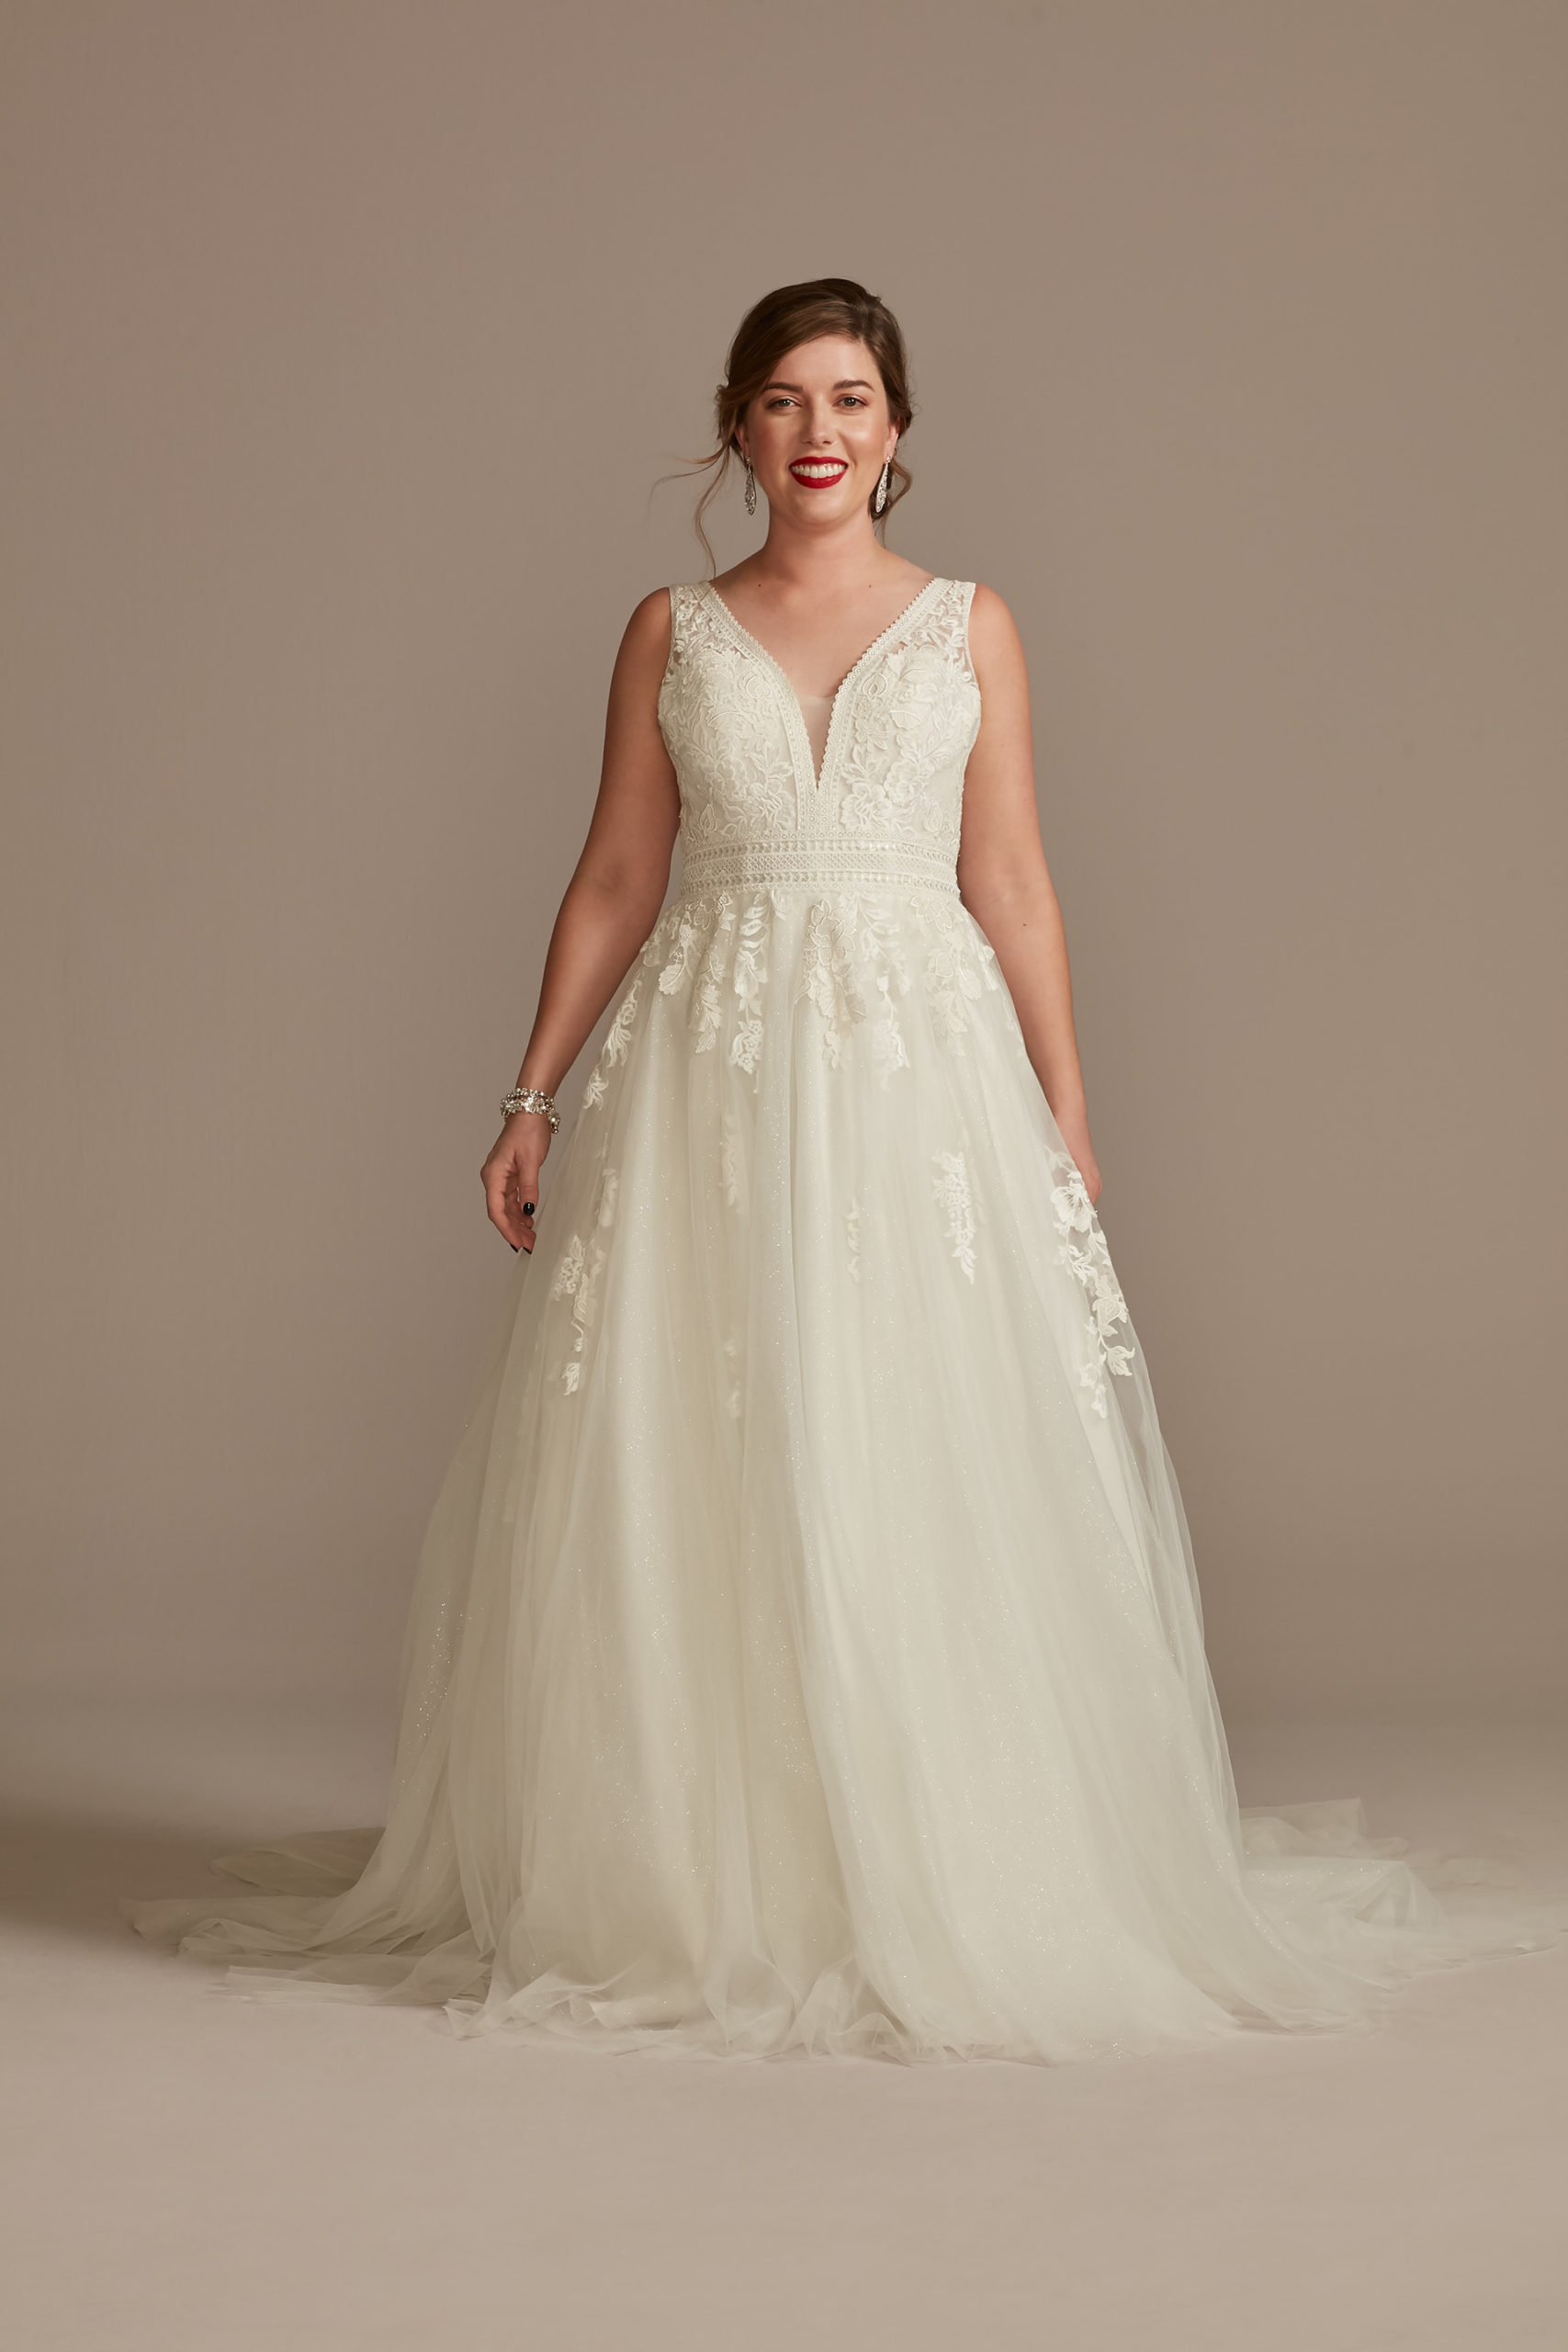 bride wearing ethereal Embroidered V-Neck Wedding Dress with Tulle Skirt